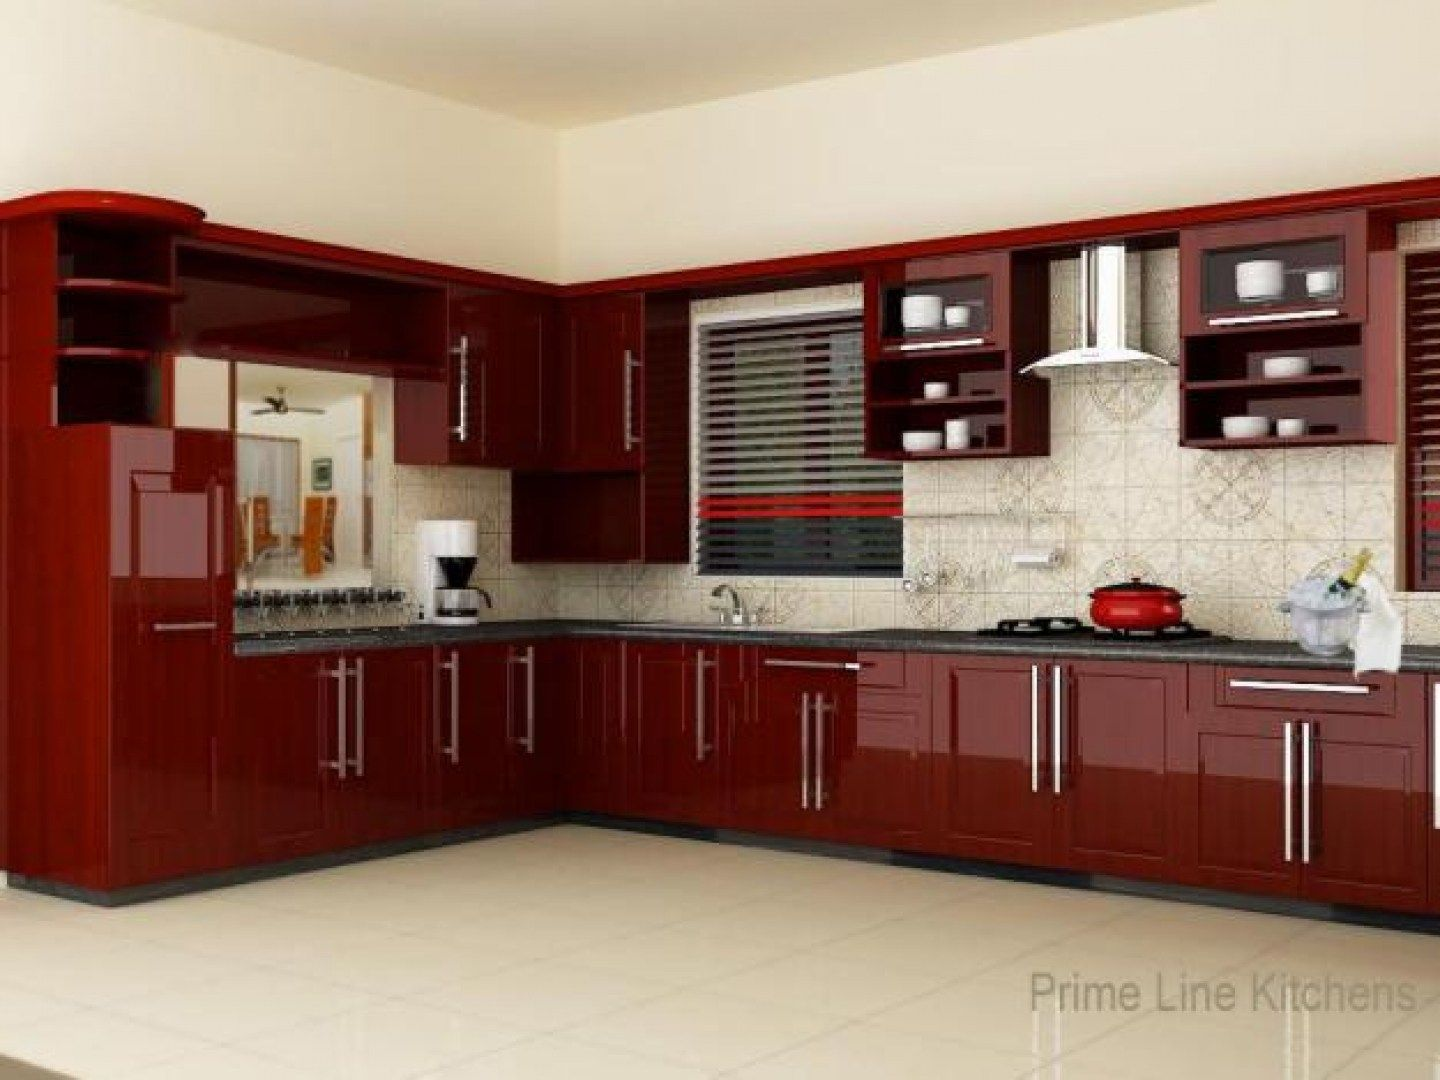 Kitchen design ideas kitchen woodwork designs hyderabad for Cupboard cabinet designs